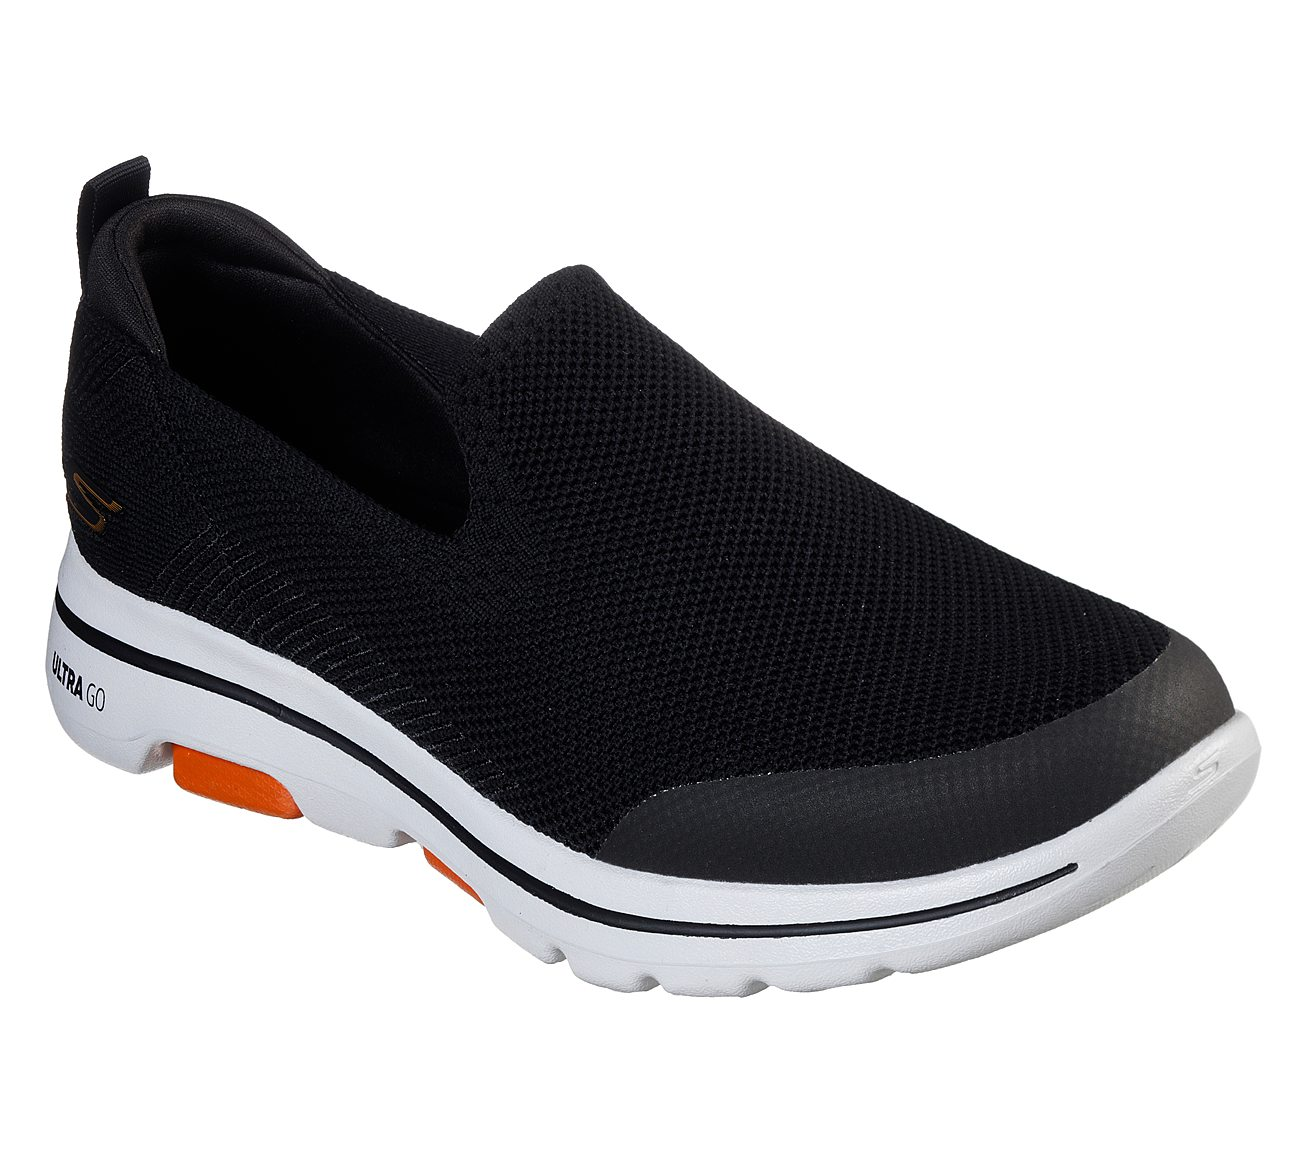 Buy SKECHERS Skechers GOwalk 5 - Prized